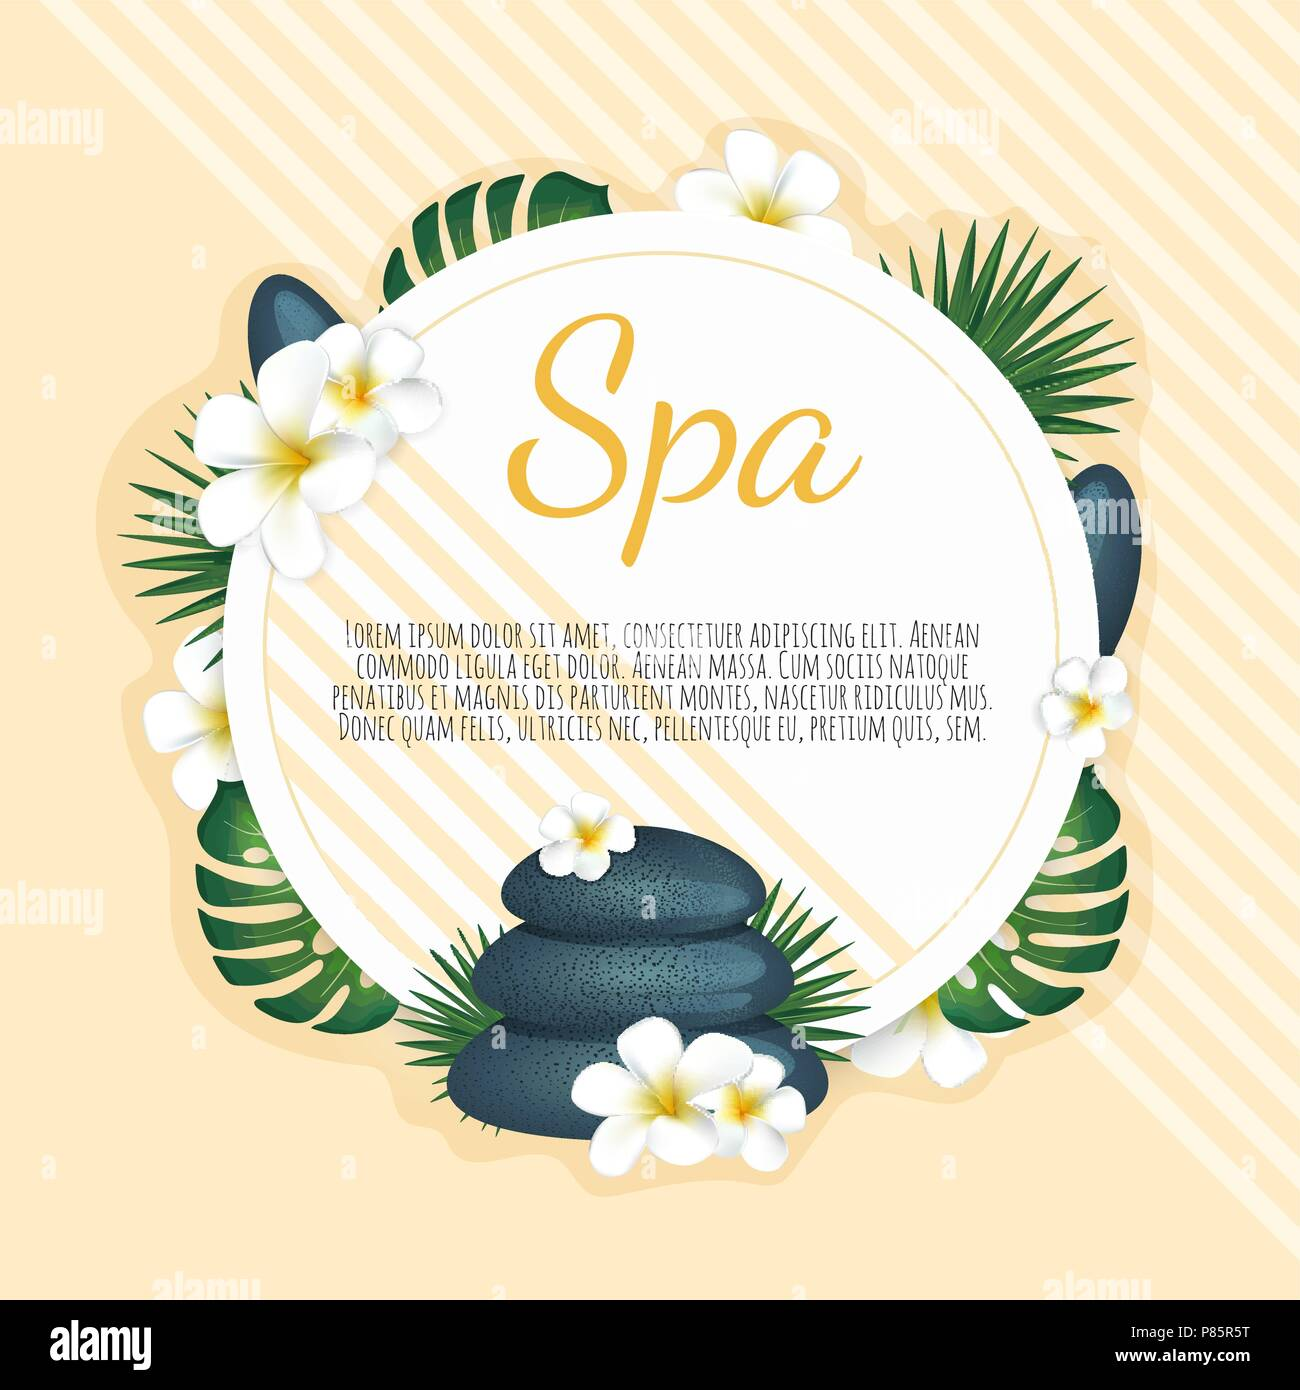 Spa banner withPlumeria flowers and zen stone. Vector illustration - Stock Vector